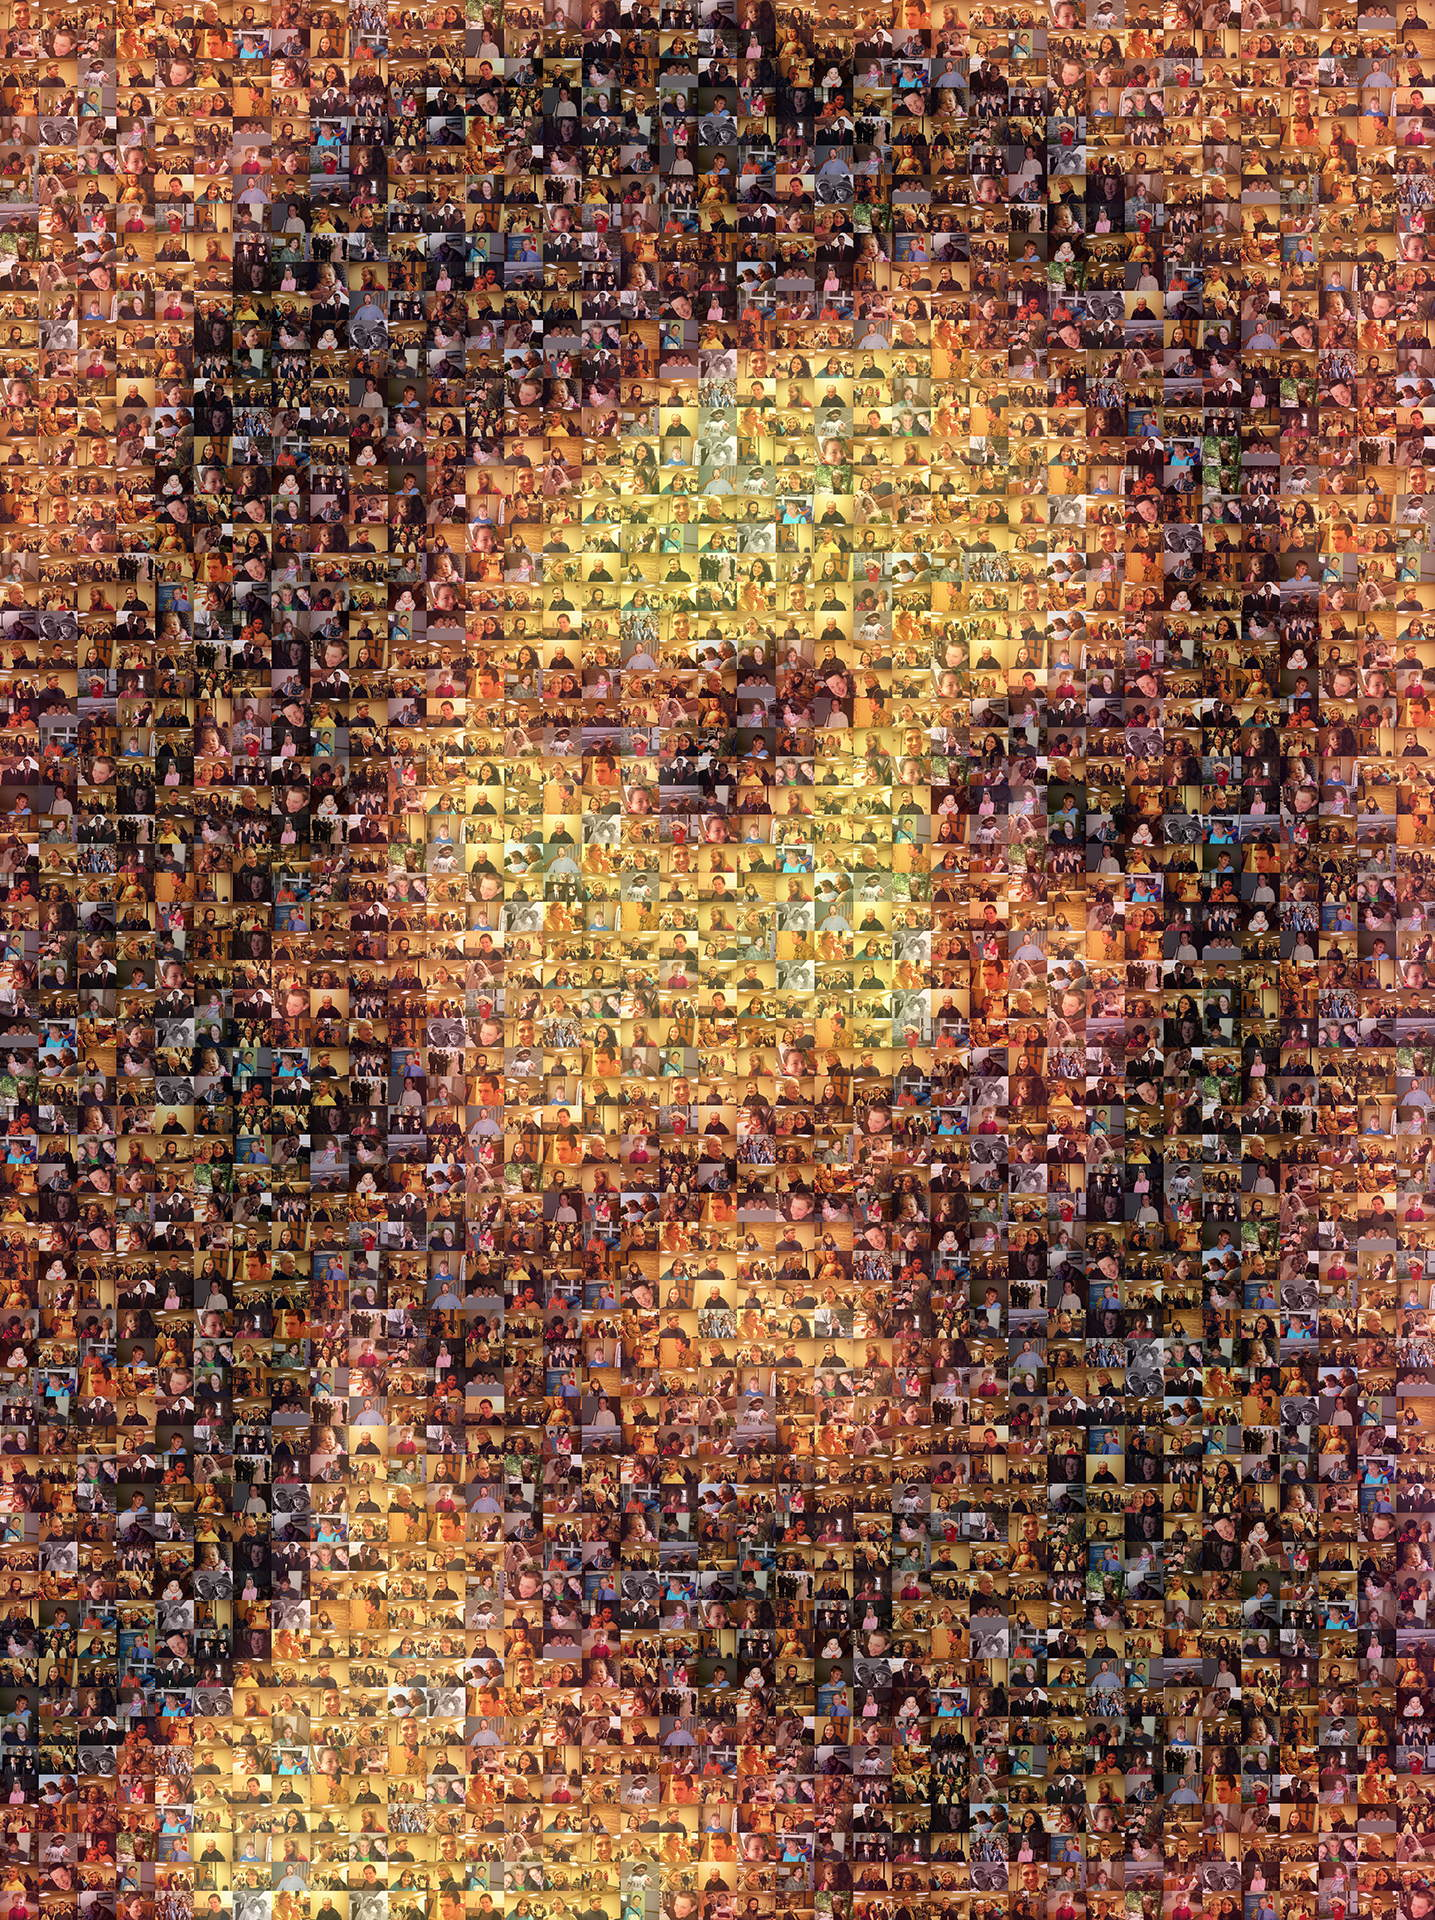 photo mosaic created using only 106 church photos